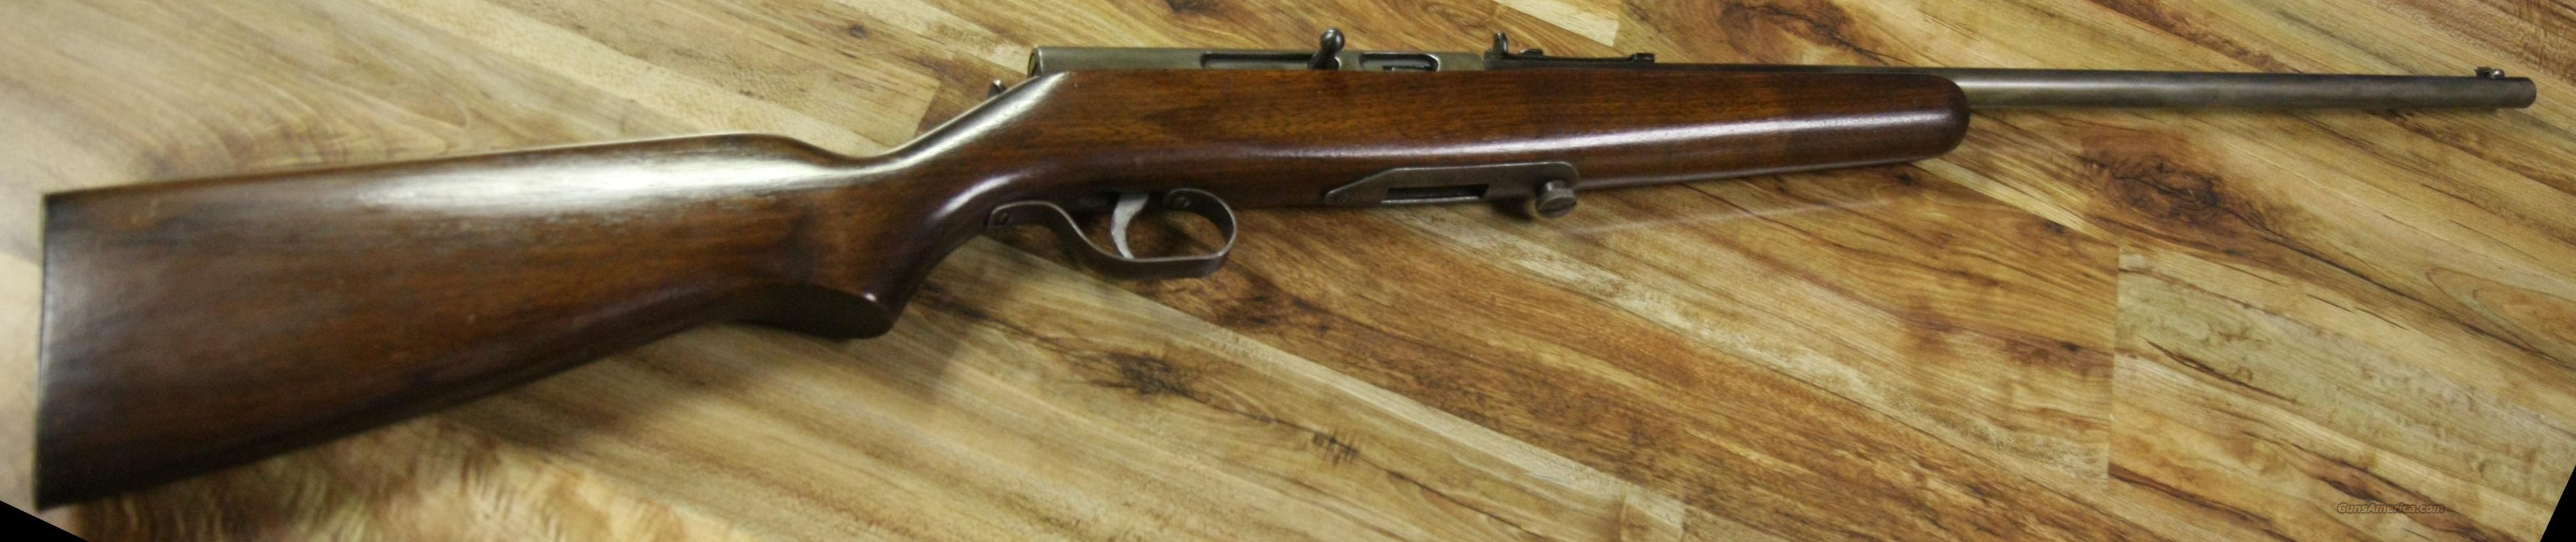 MARLIN RANGER MODEL 34A .22 AUTO-LOADING RIFLE  Guns > Rifles > Marlin Rifles > Modern > Semi-auto